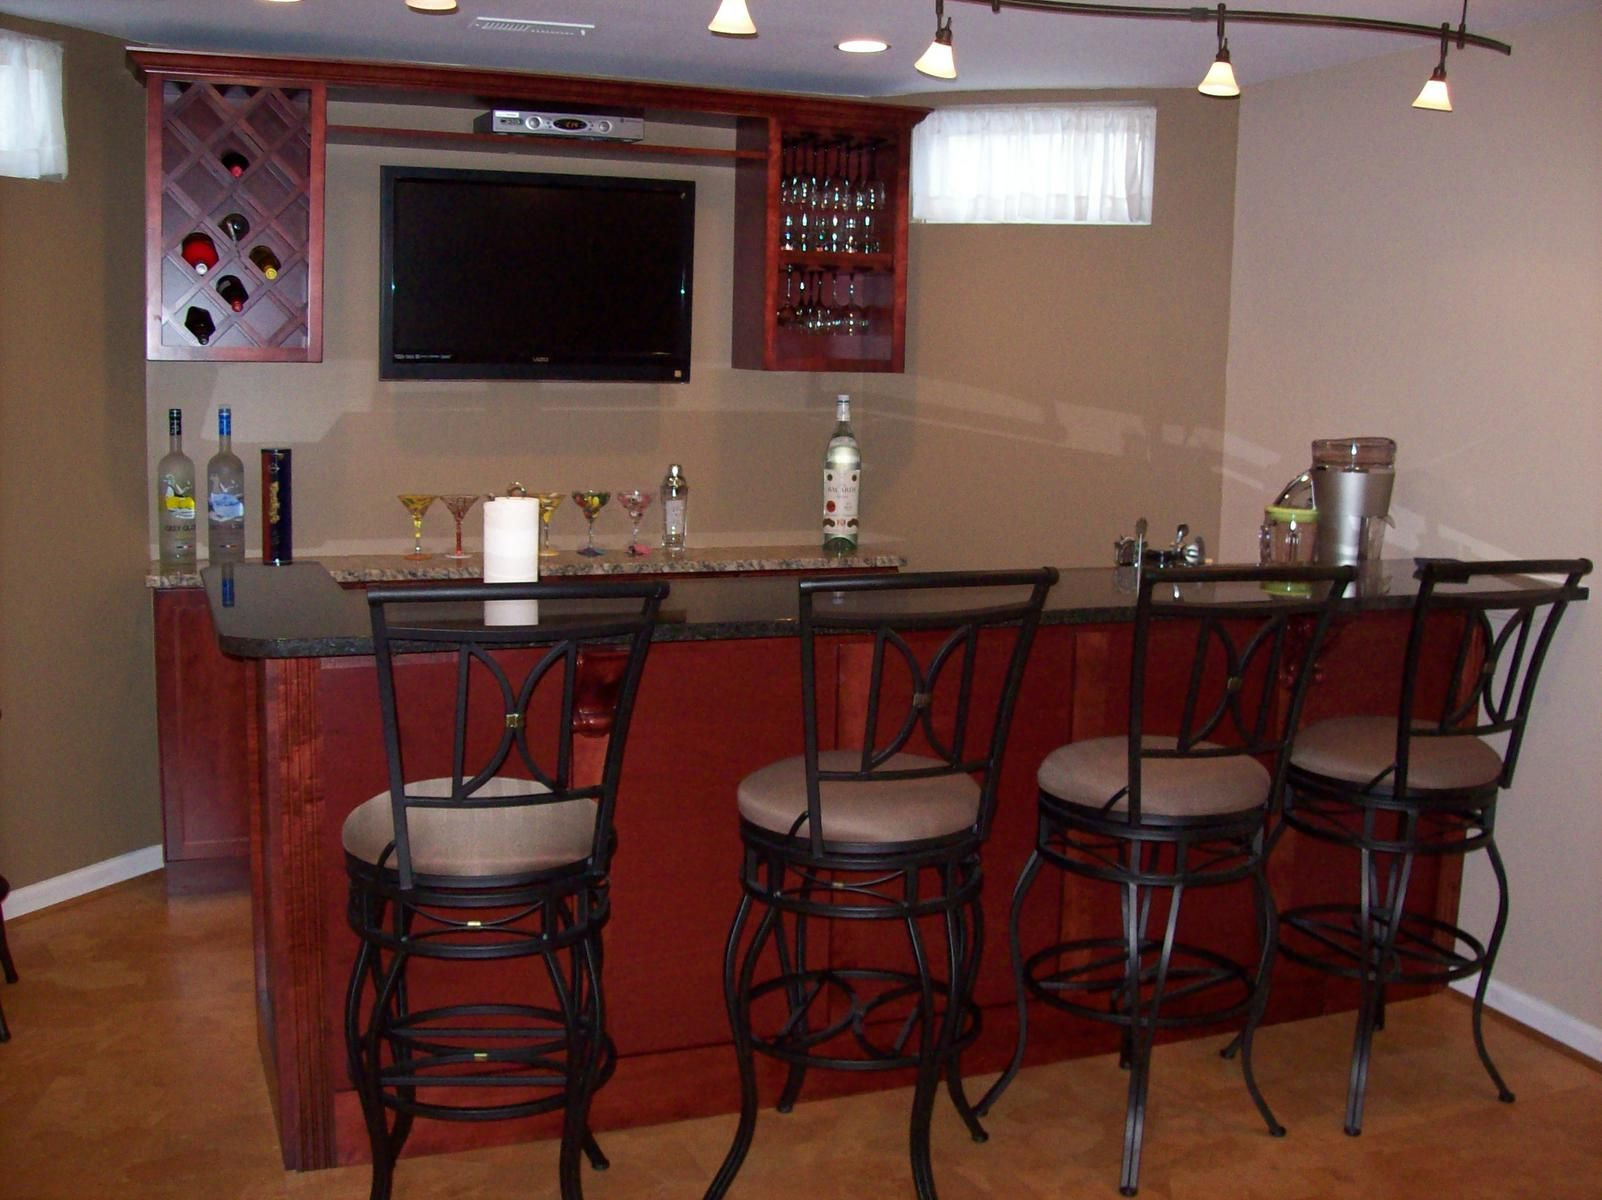 Hand crafted basement bar by sdg home solutions for Home bar designs and ideas